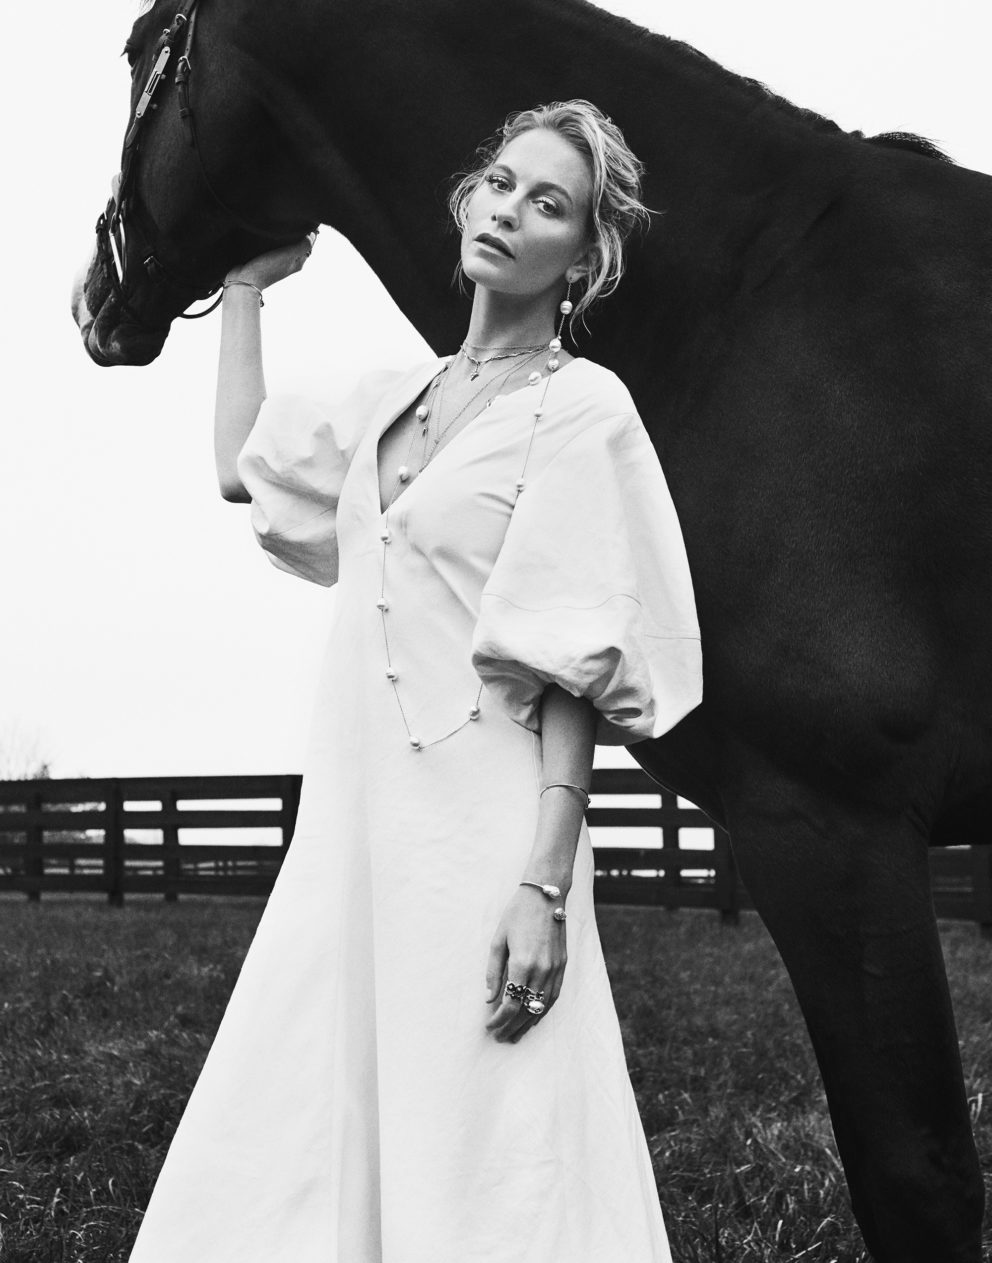 181015 0020 Ilene Joy Poppy Delevingne 141 Christian Hogstedt Bw Revised Christian Hogstedt Web